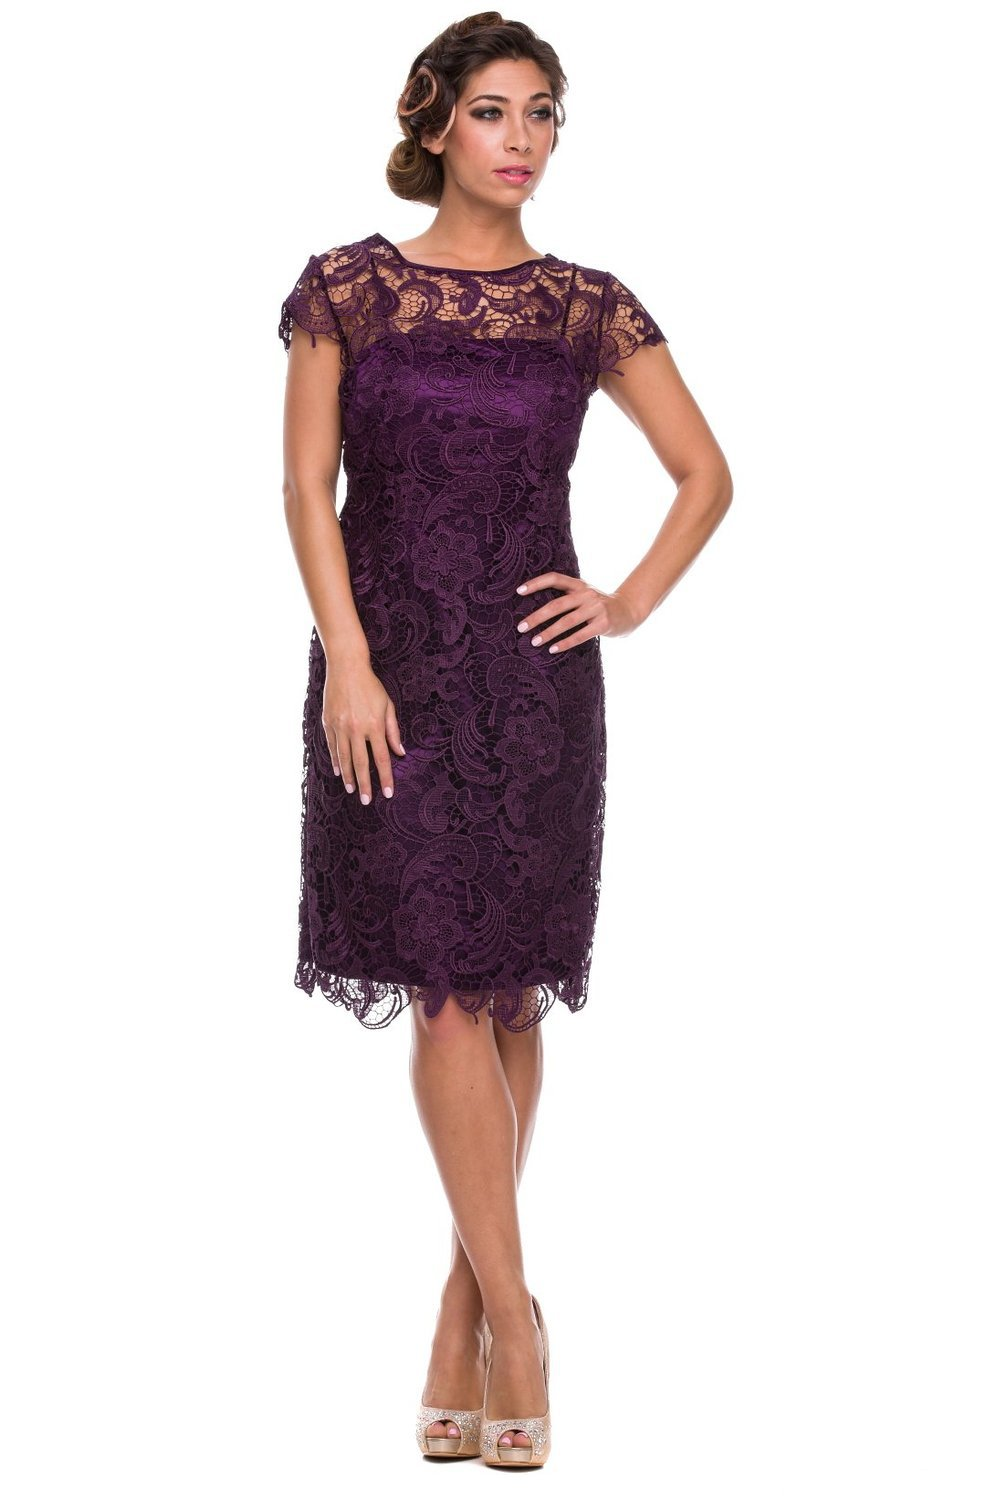 2015 new fashion summer dress short purple lace mother of for Mother of the bride dresses summer wedding